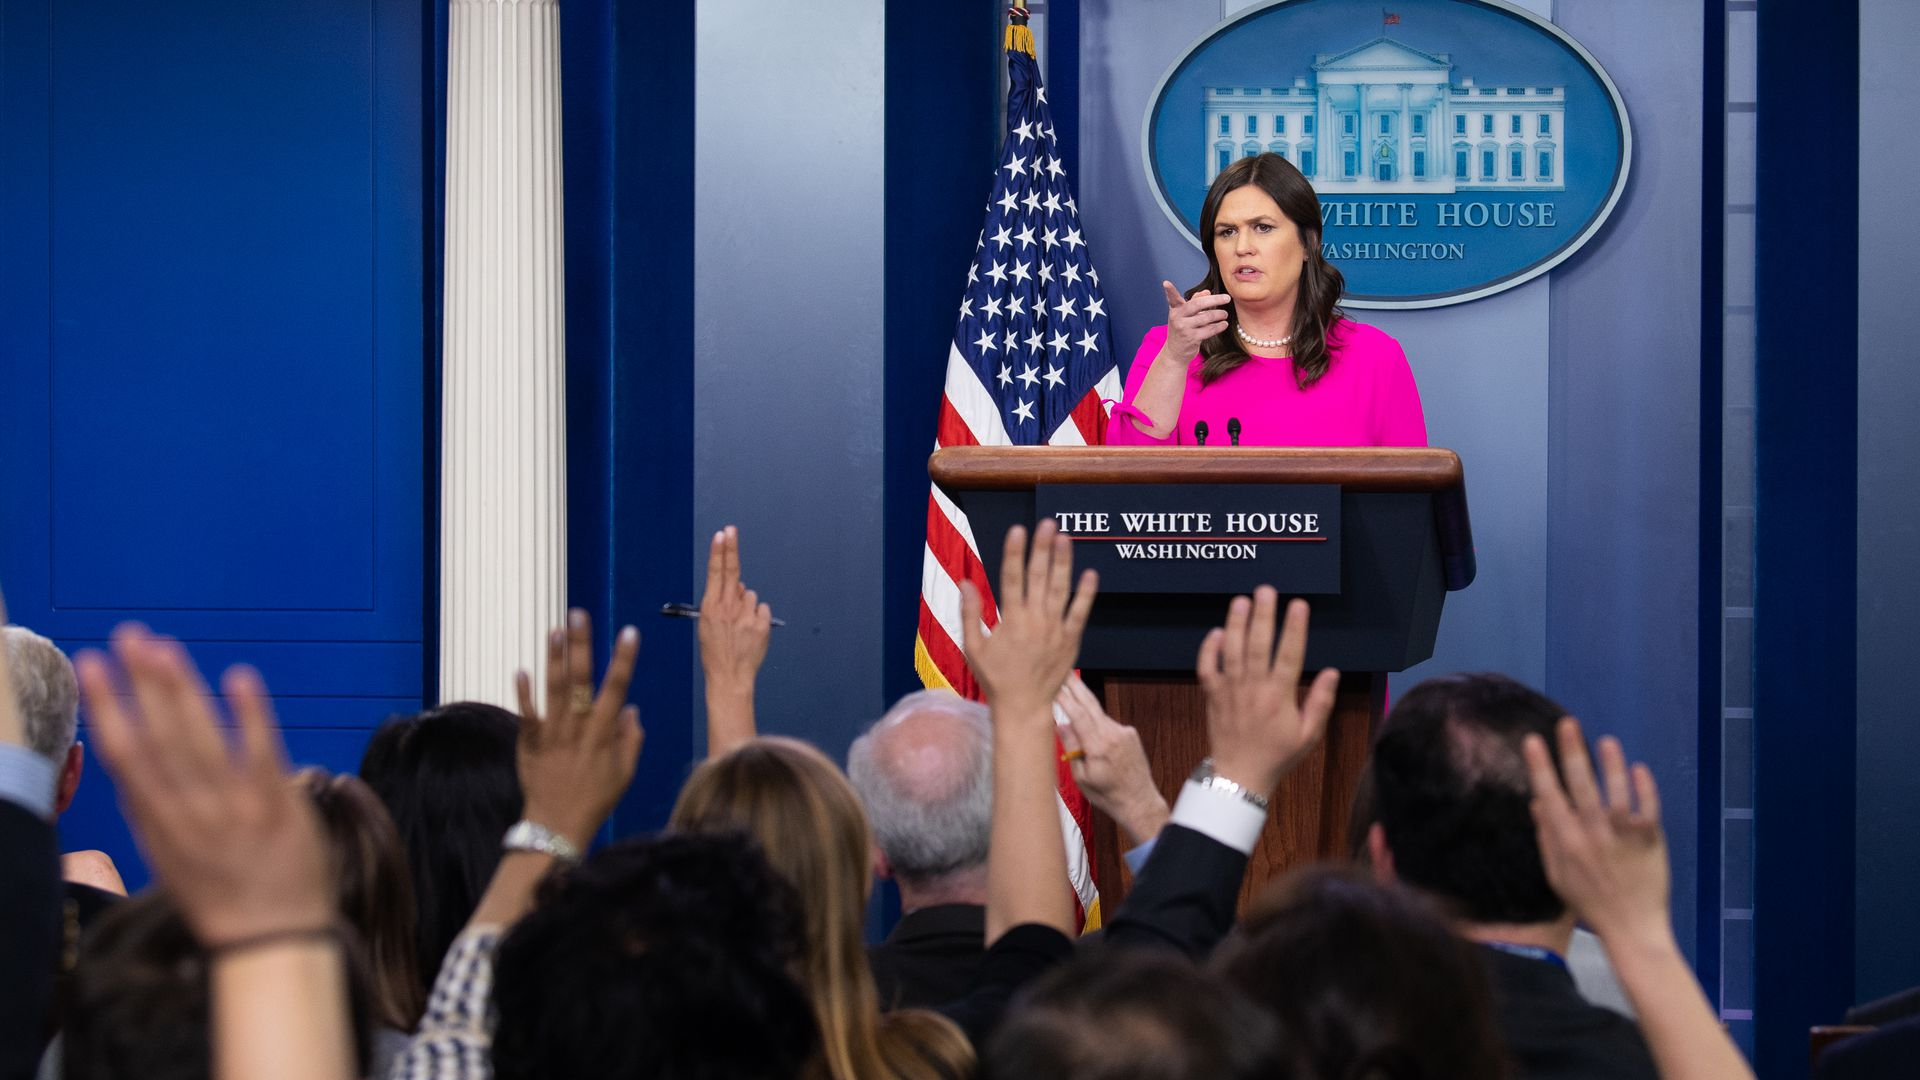 Sarah Sanders in a pink jacket a the White House briefing room stand